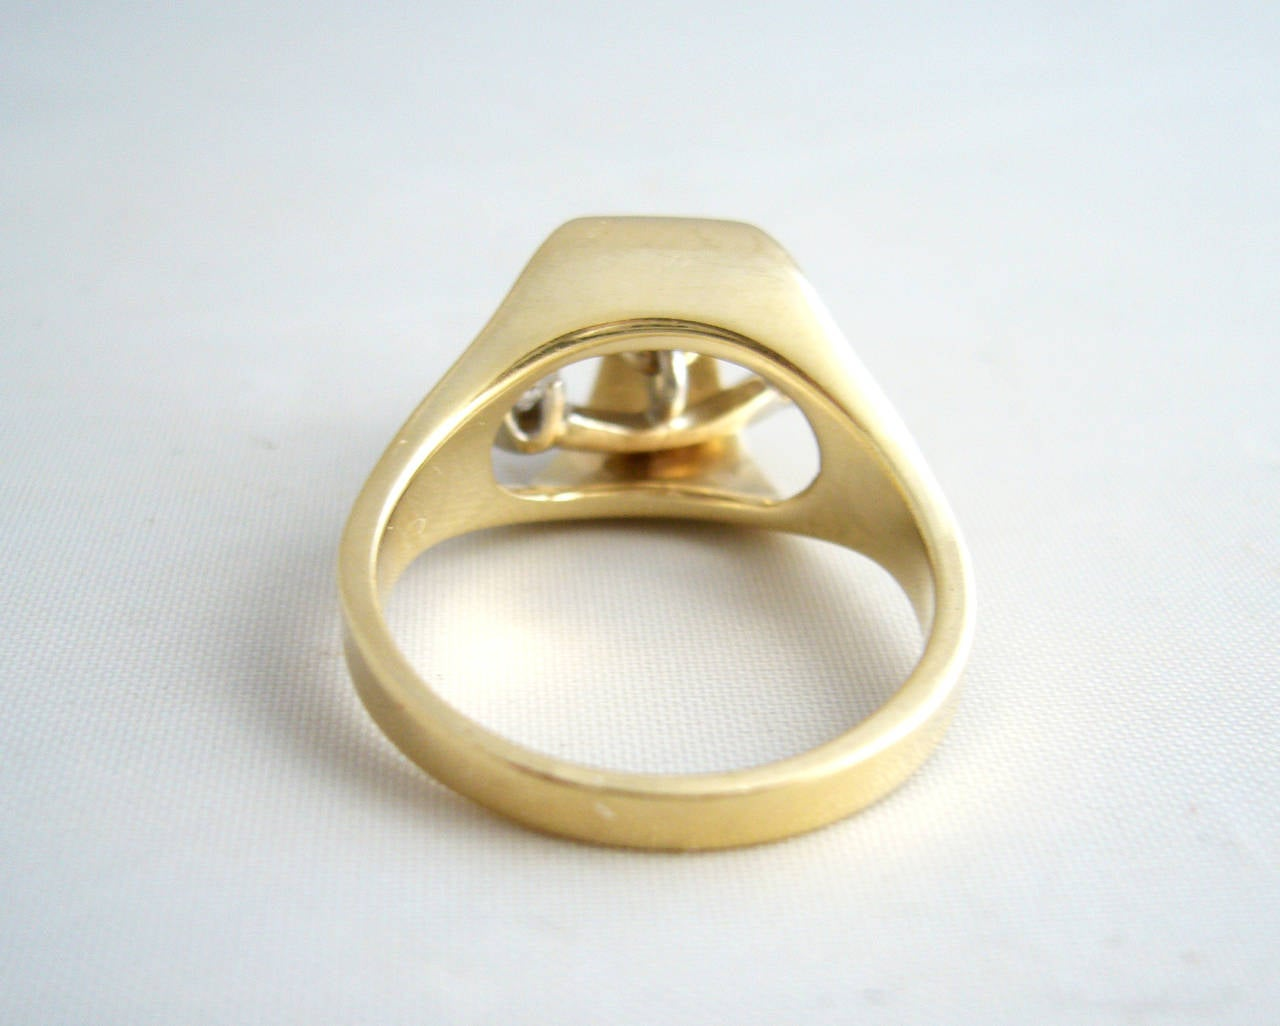 Gold Diamond Kinetic Modernist Ring For Sale 1